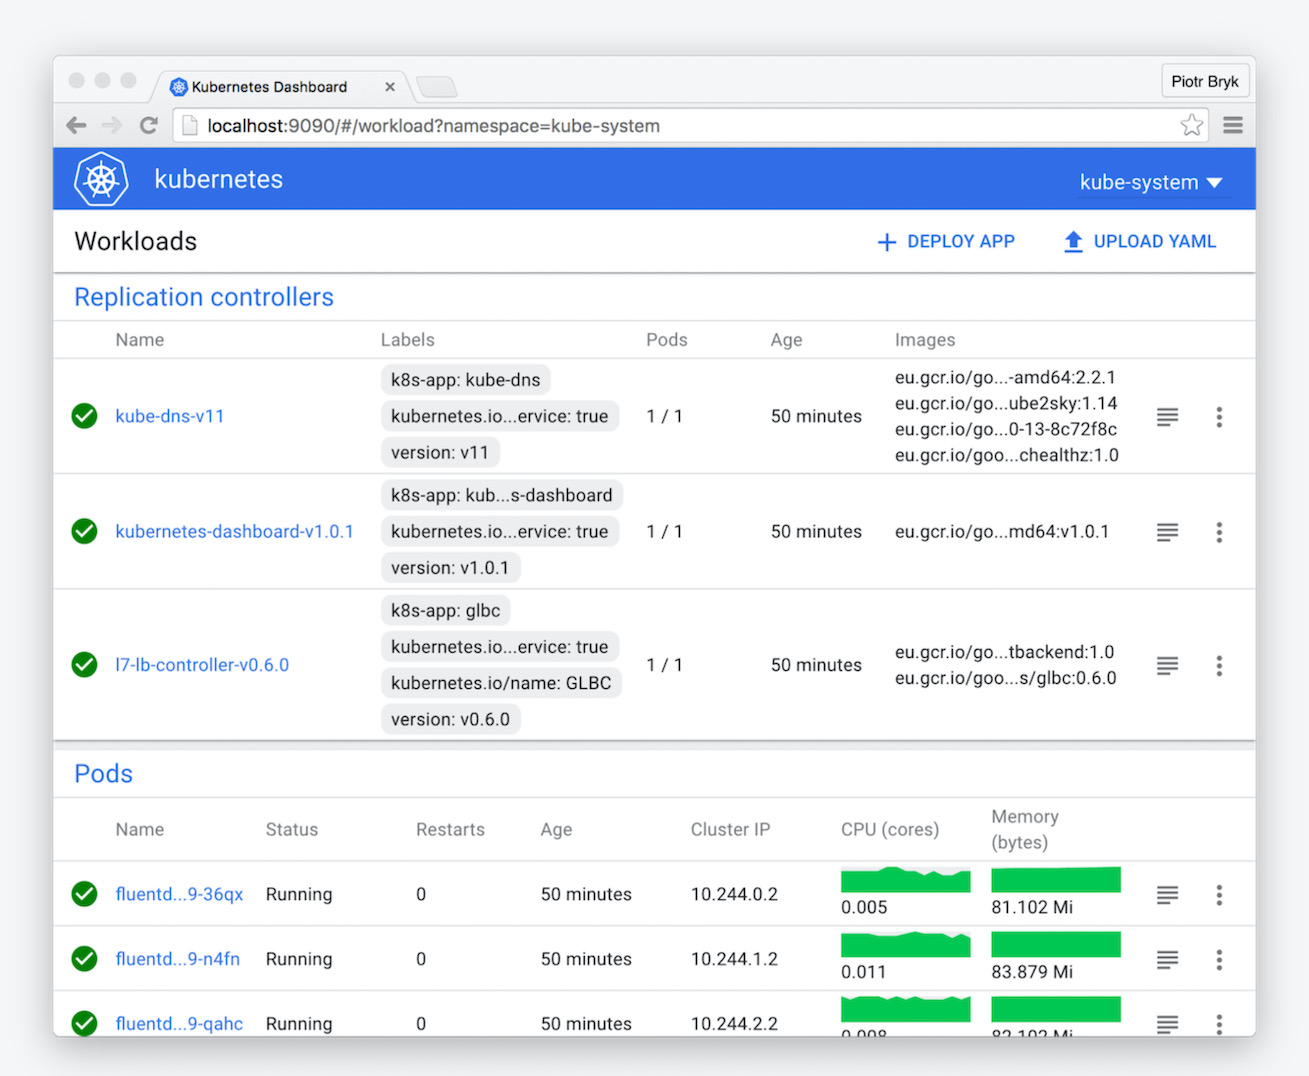 Replications controllers on the Kubernetes Dashboard